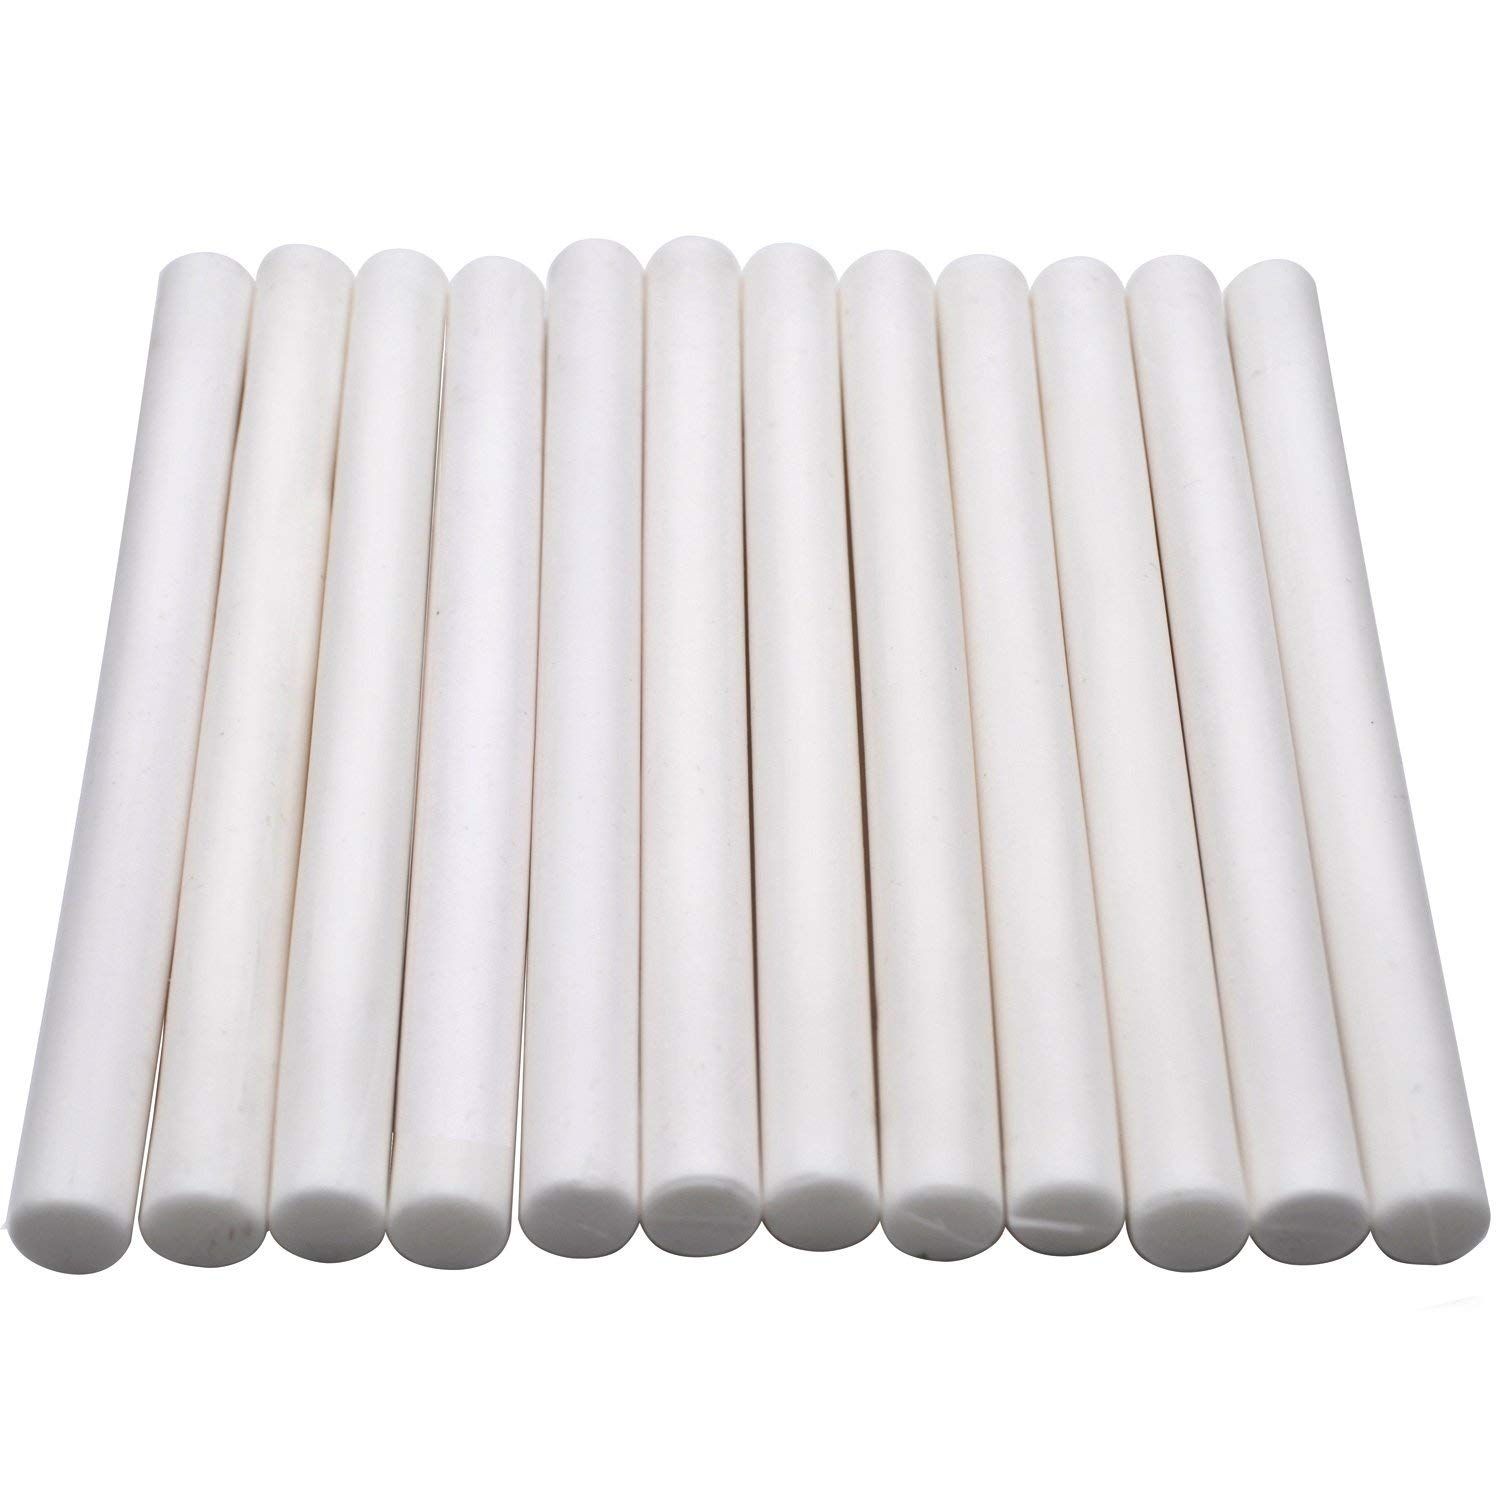 White Wax Glue Gun Sticks for Manuscript Wax Seal Stamp - 12 Sticks